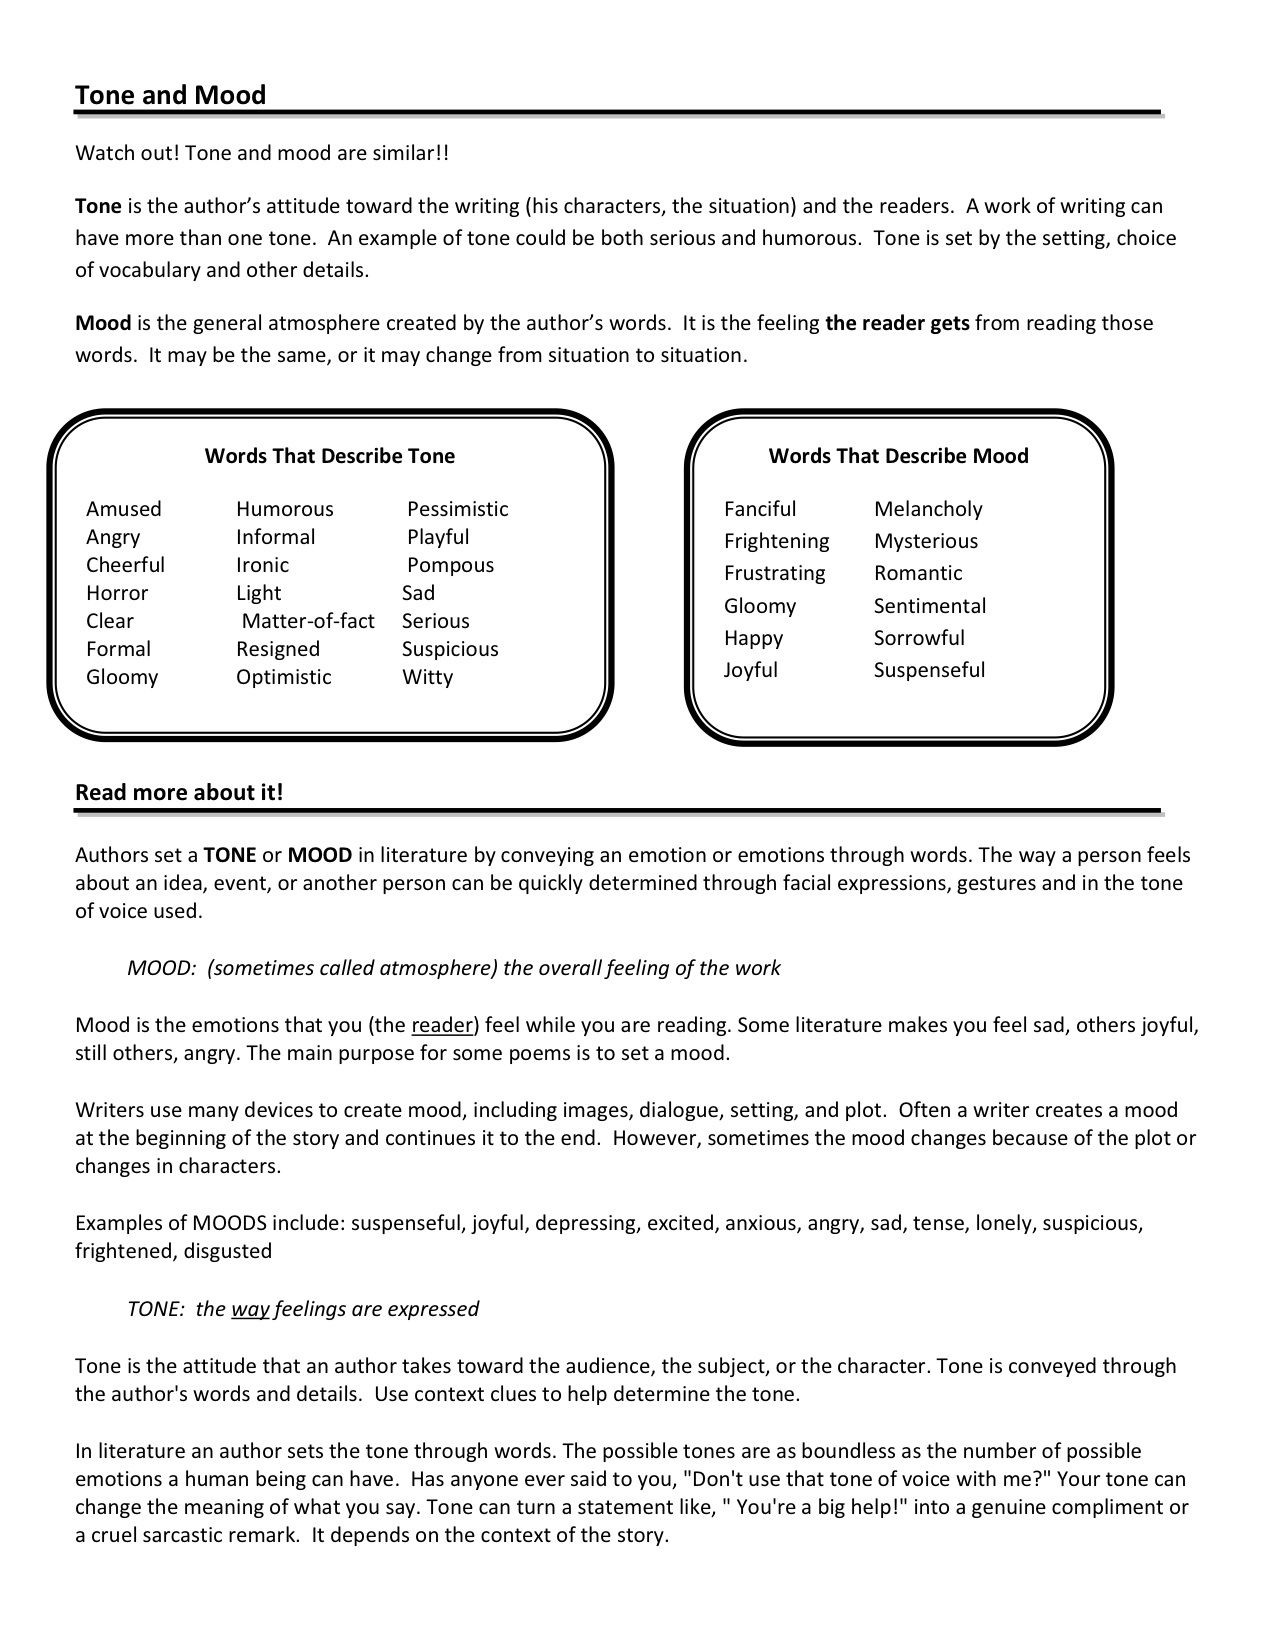 Worksheets American Literature Worksheets tone and mood worksheets google search teachinglibrary search